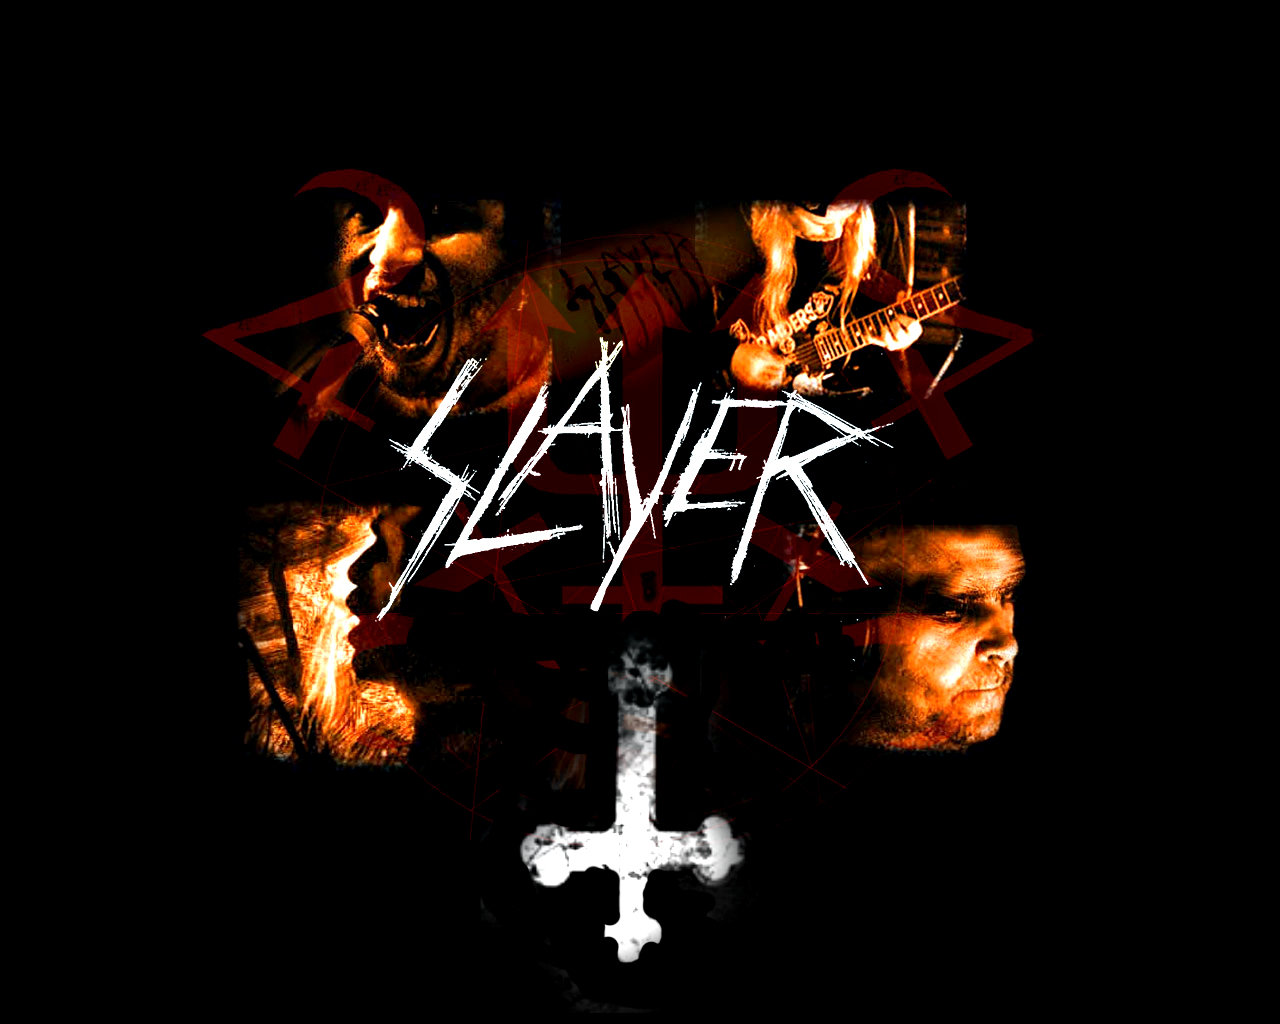 1280x1024 Slayer wallpapers HD for desktop backgrounds